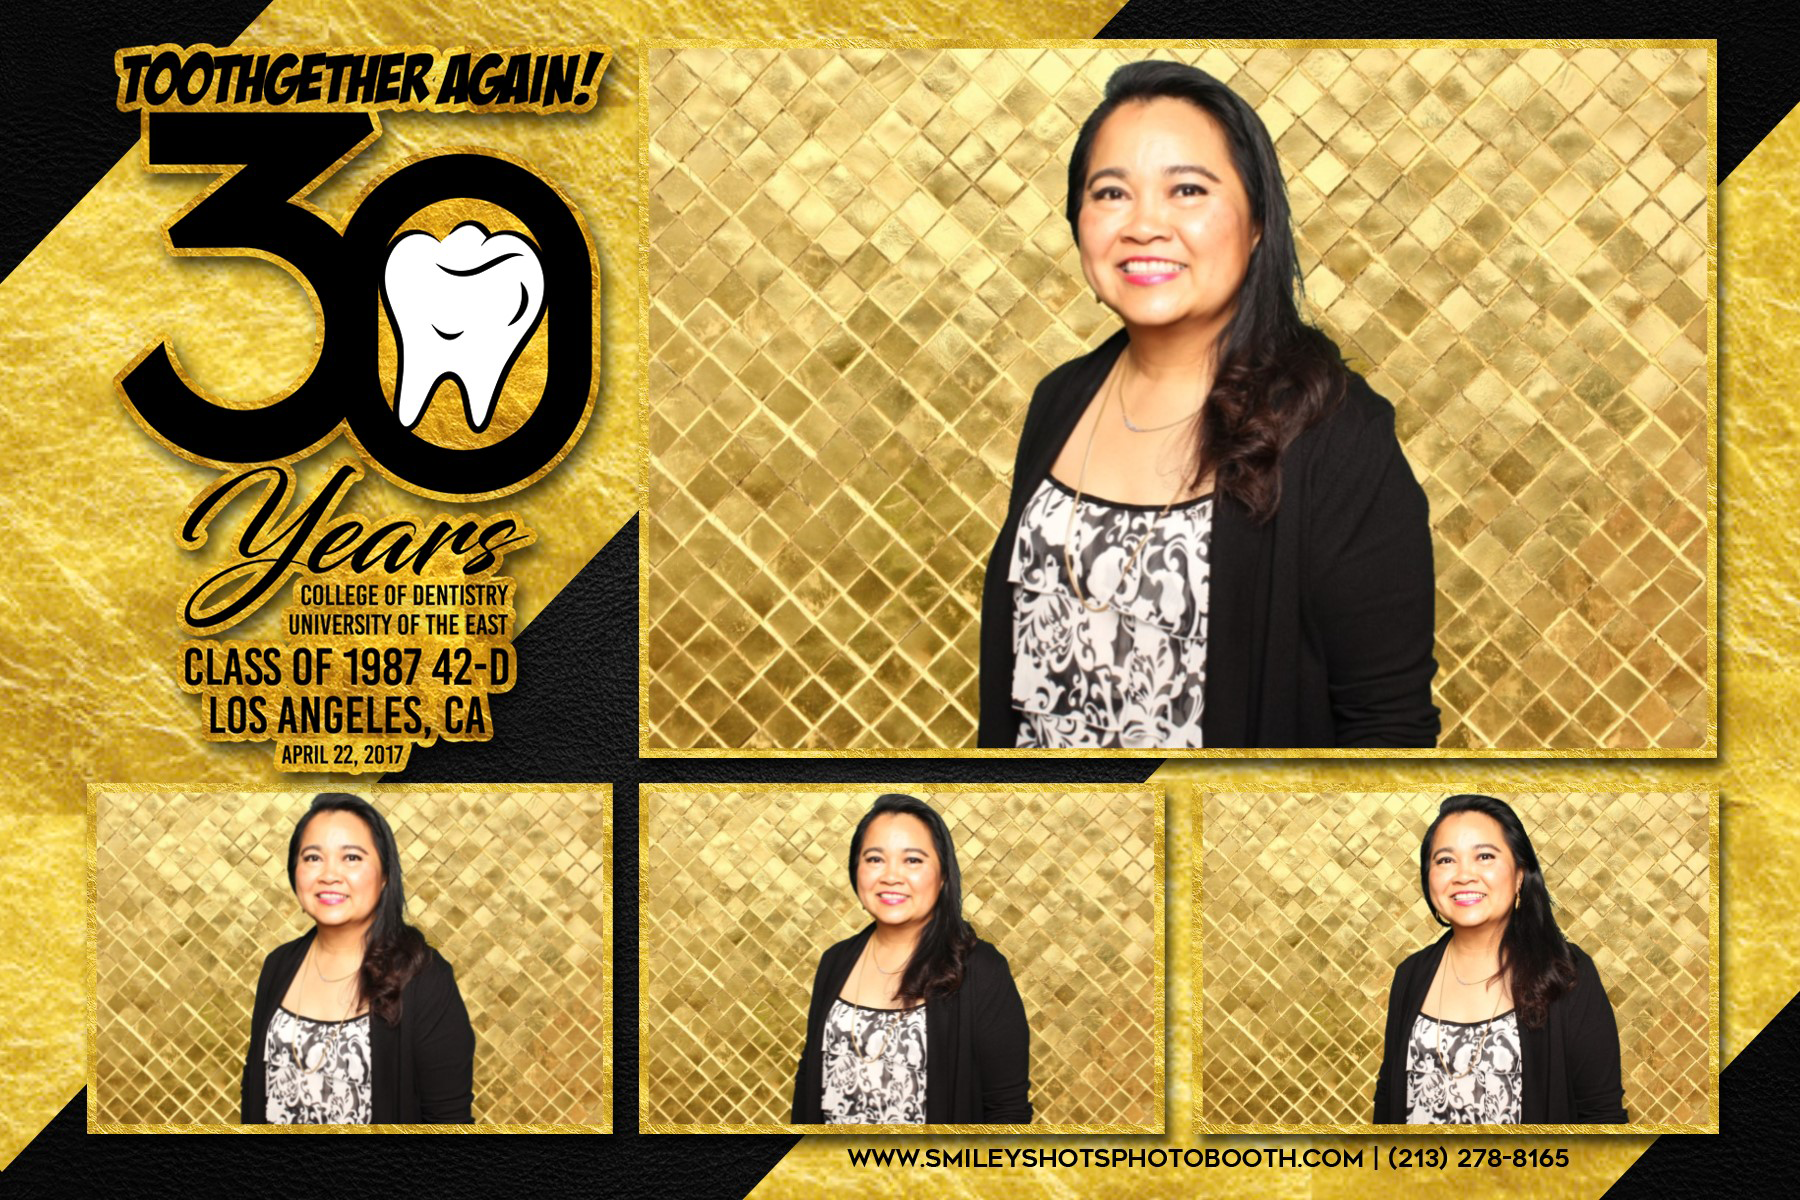 30th Years Dental UE Smiley Shots Photo Booth Photobooth (6).png